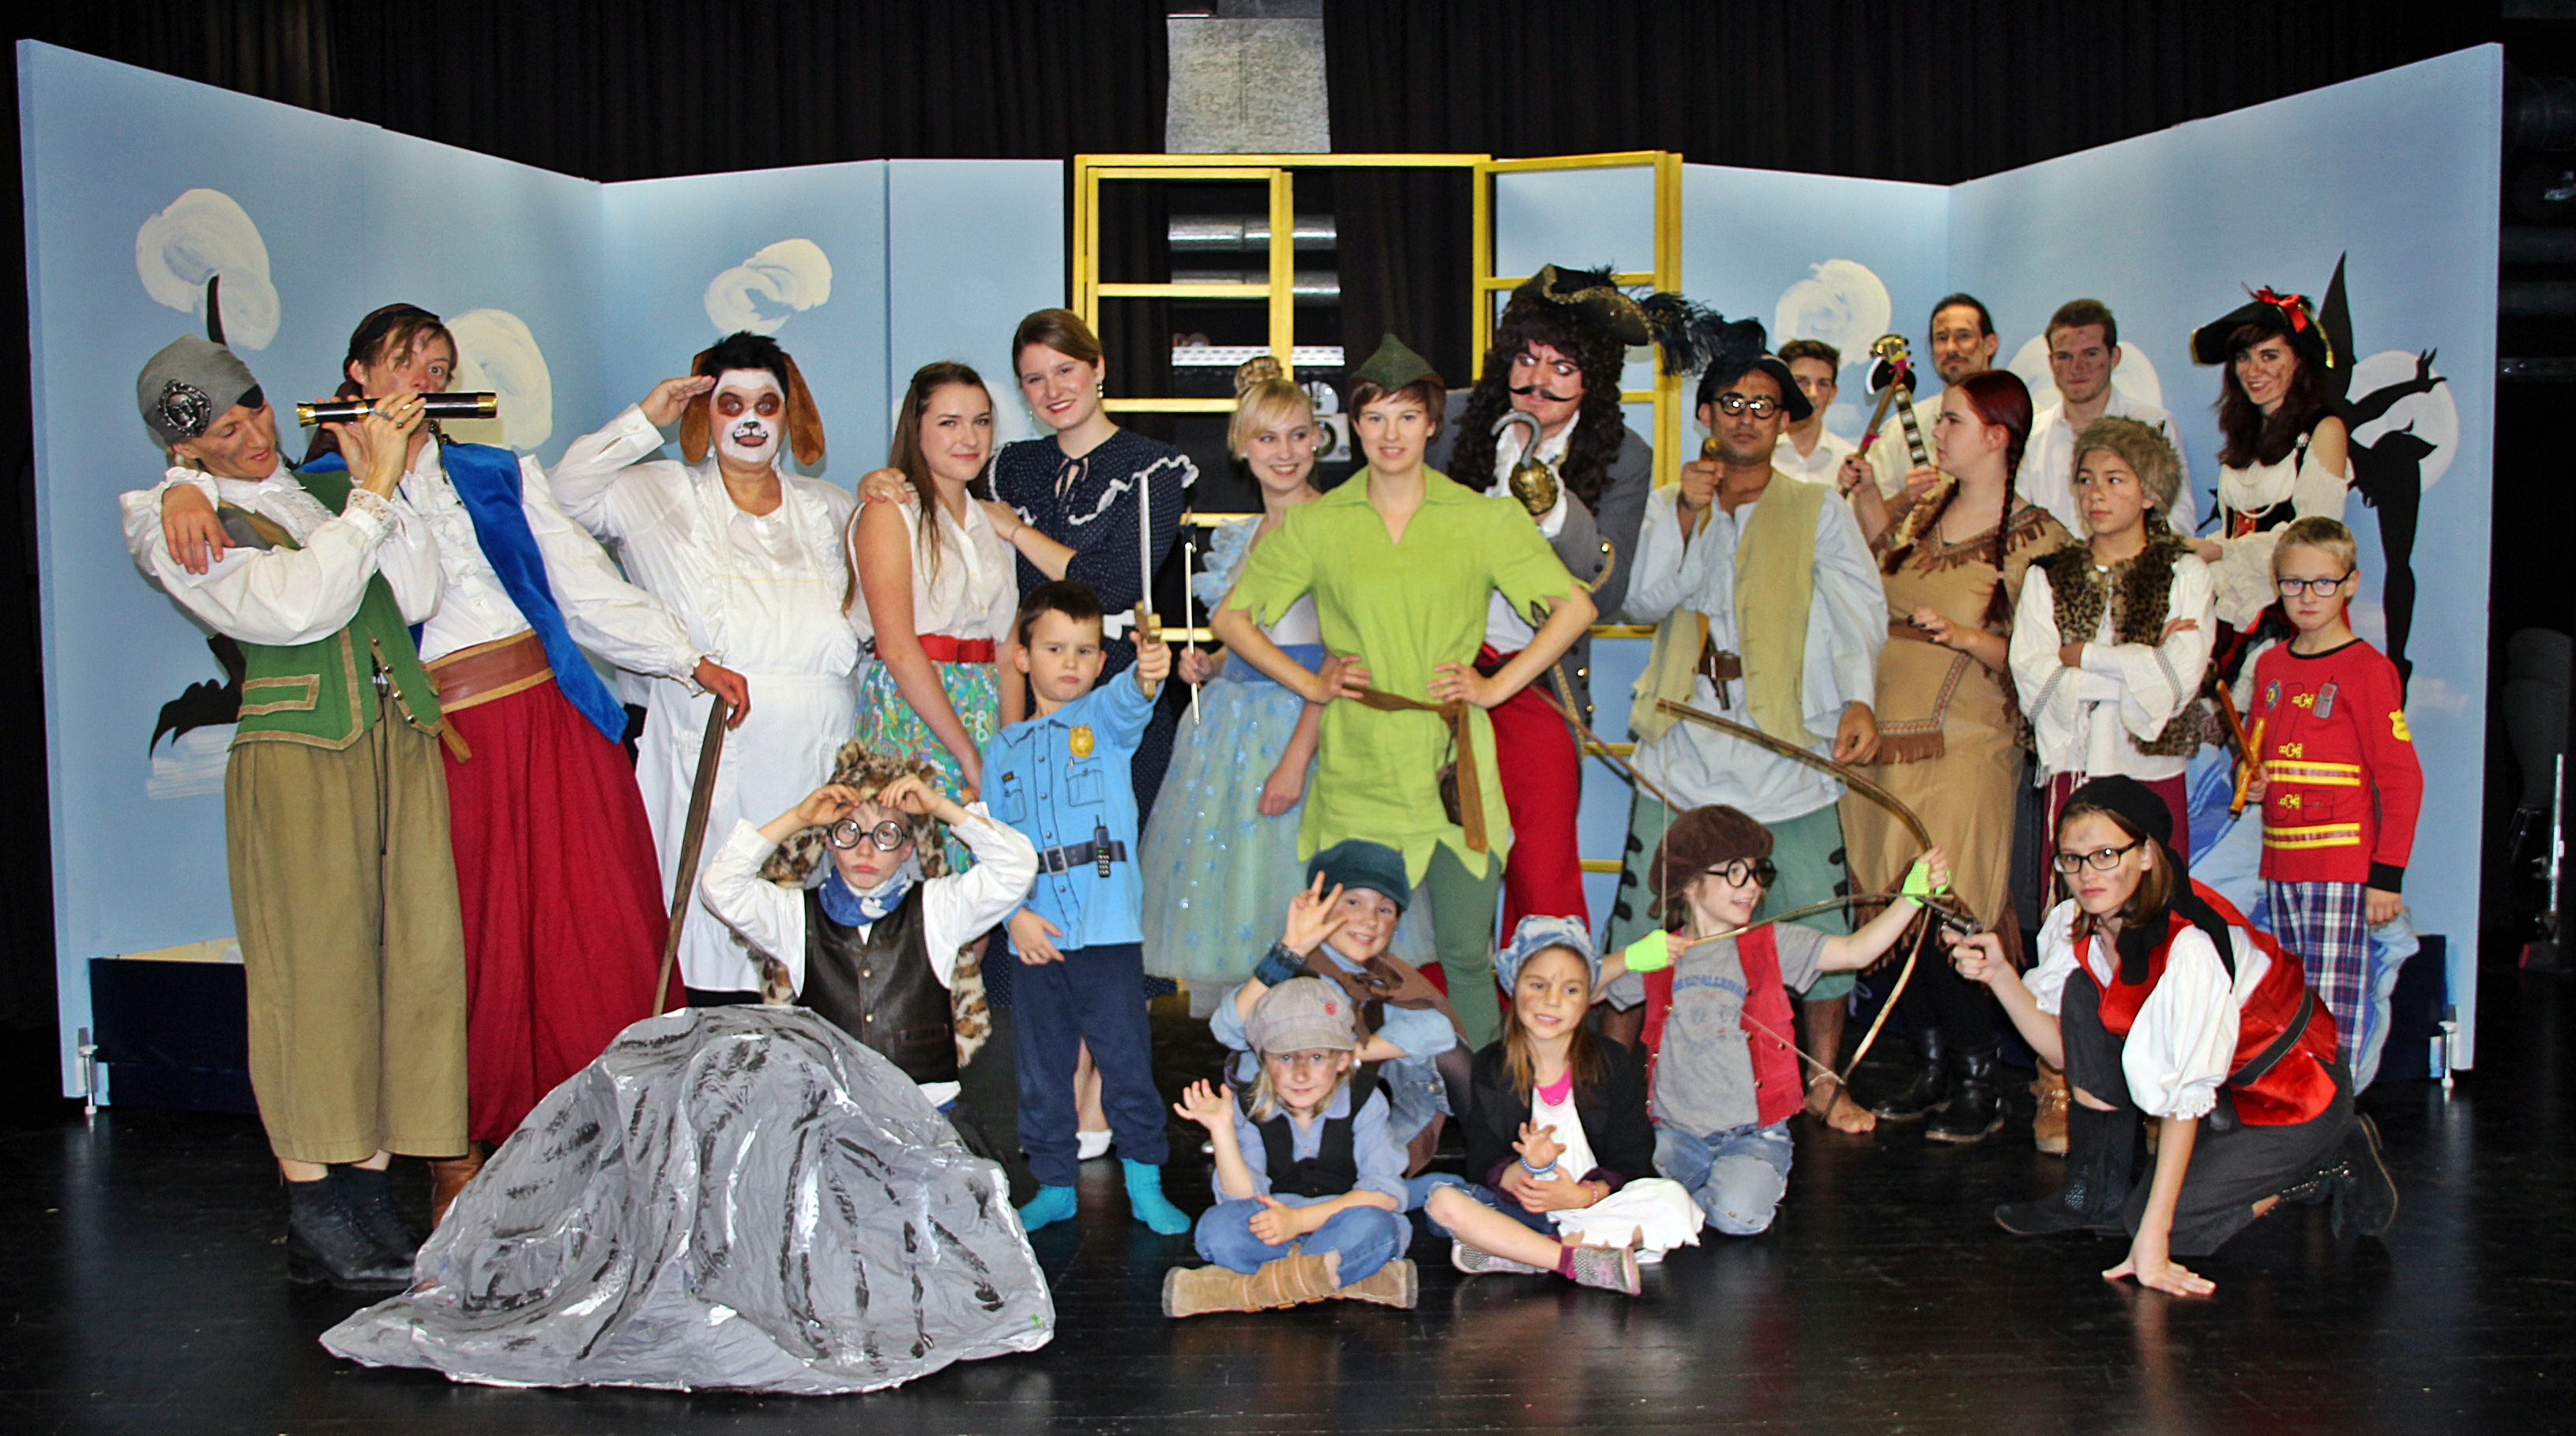 ovigo-theater-peter-pan-107